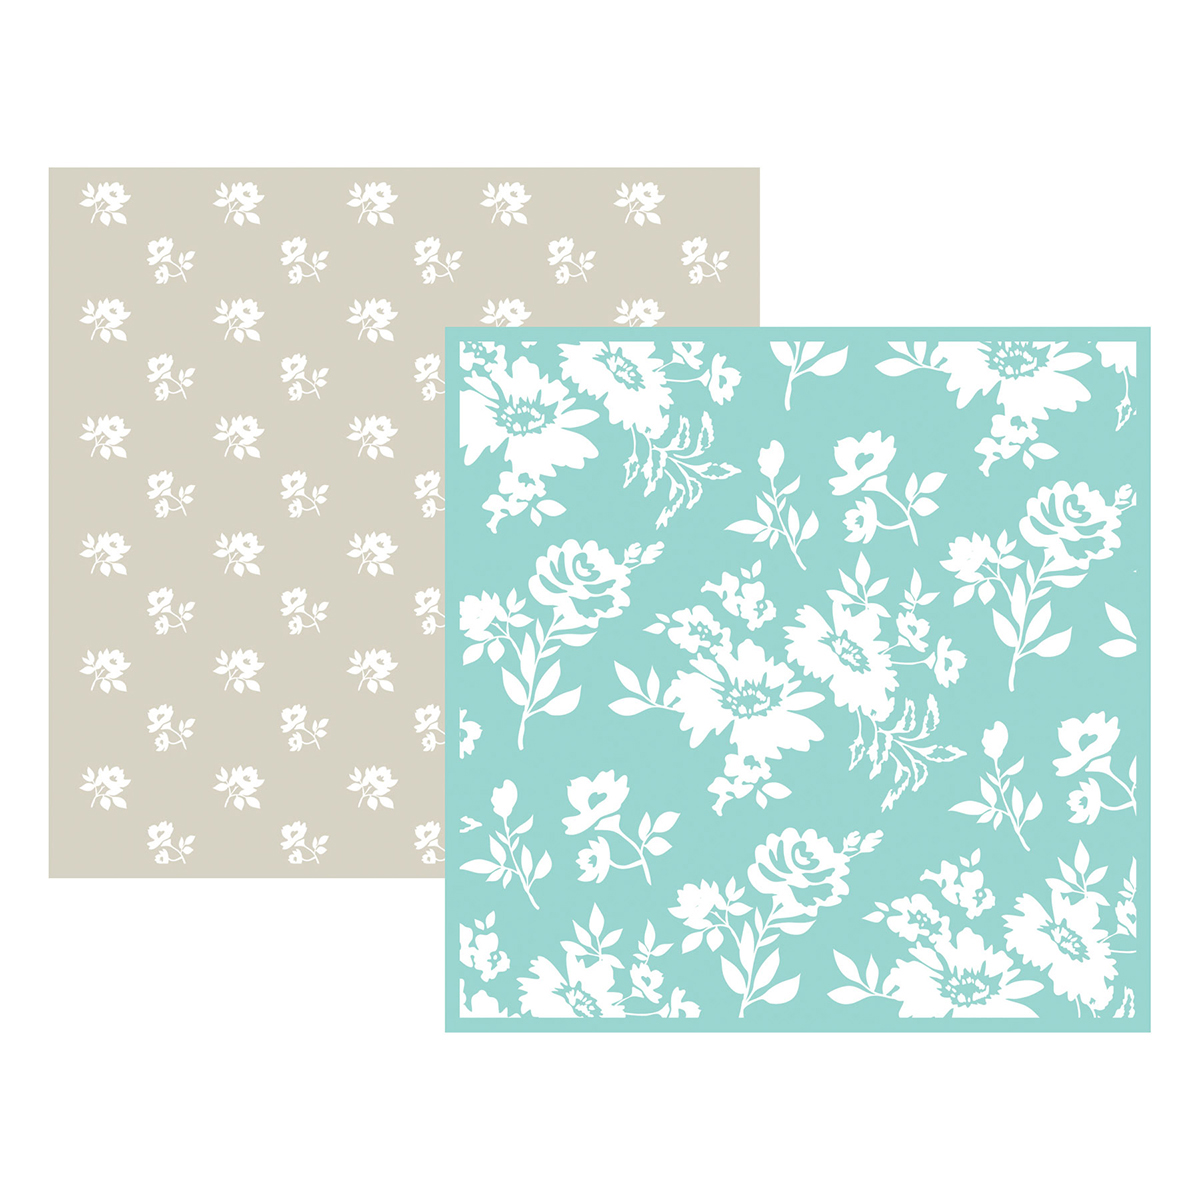 Lifestyle crafts embossing folders - Lifestyle Crafts Embossing Folders Lifestyle Crafts Embossing Folders Embossing